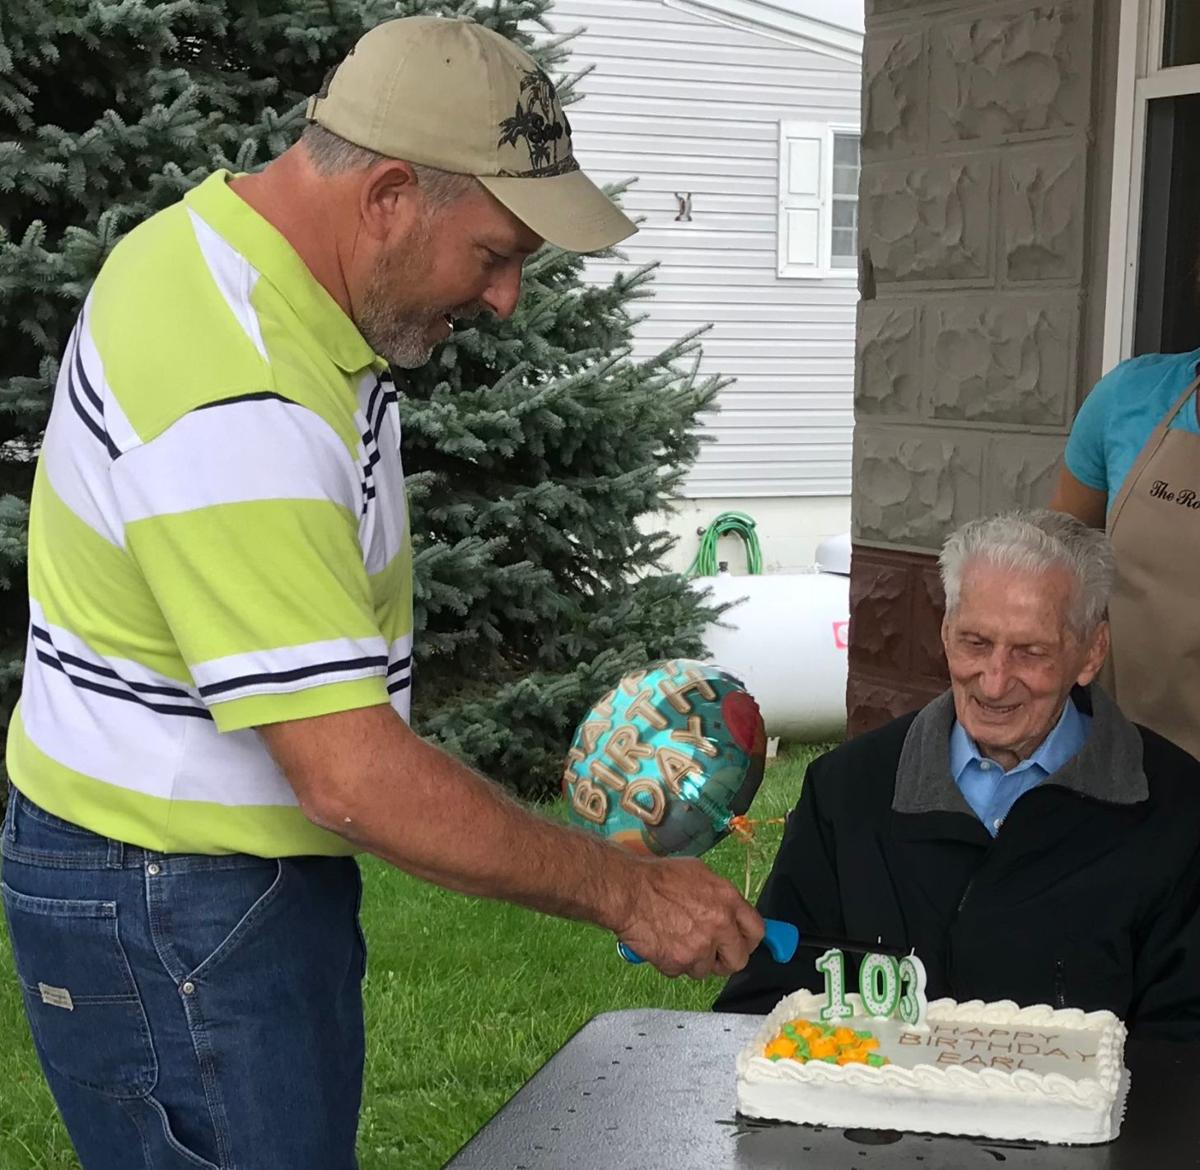 Wentz celebrates 103 years of life